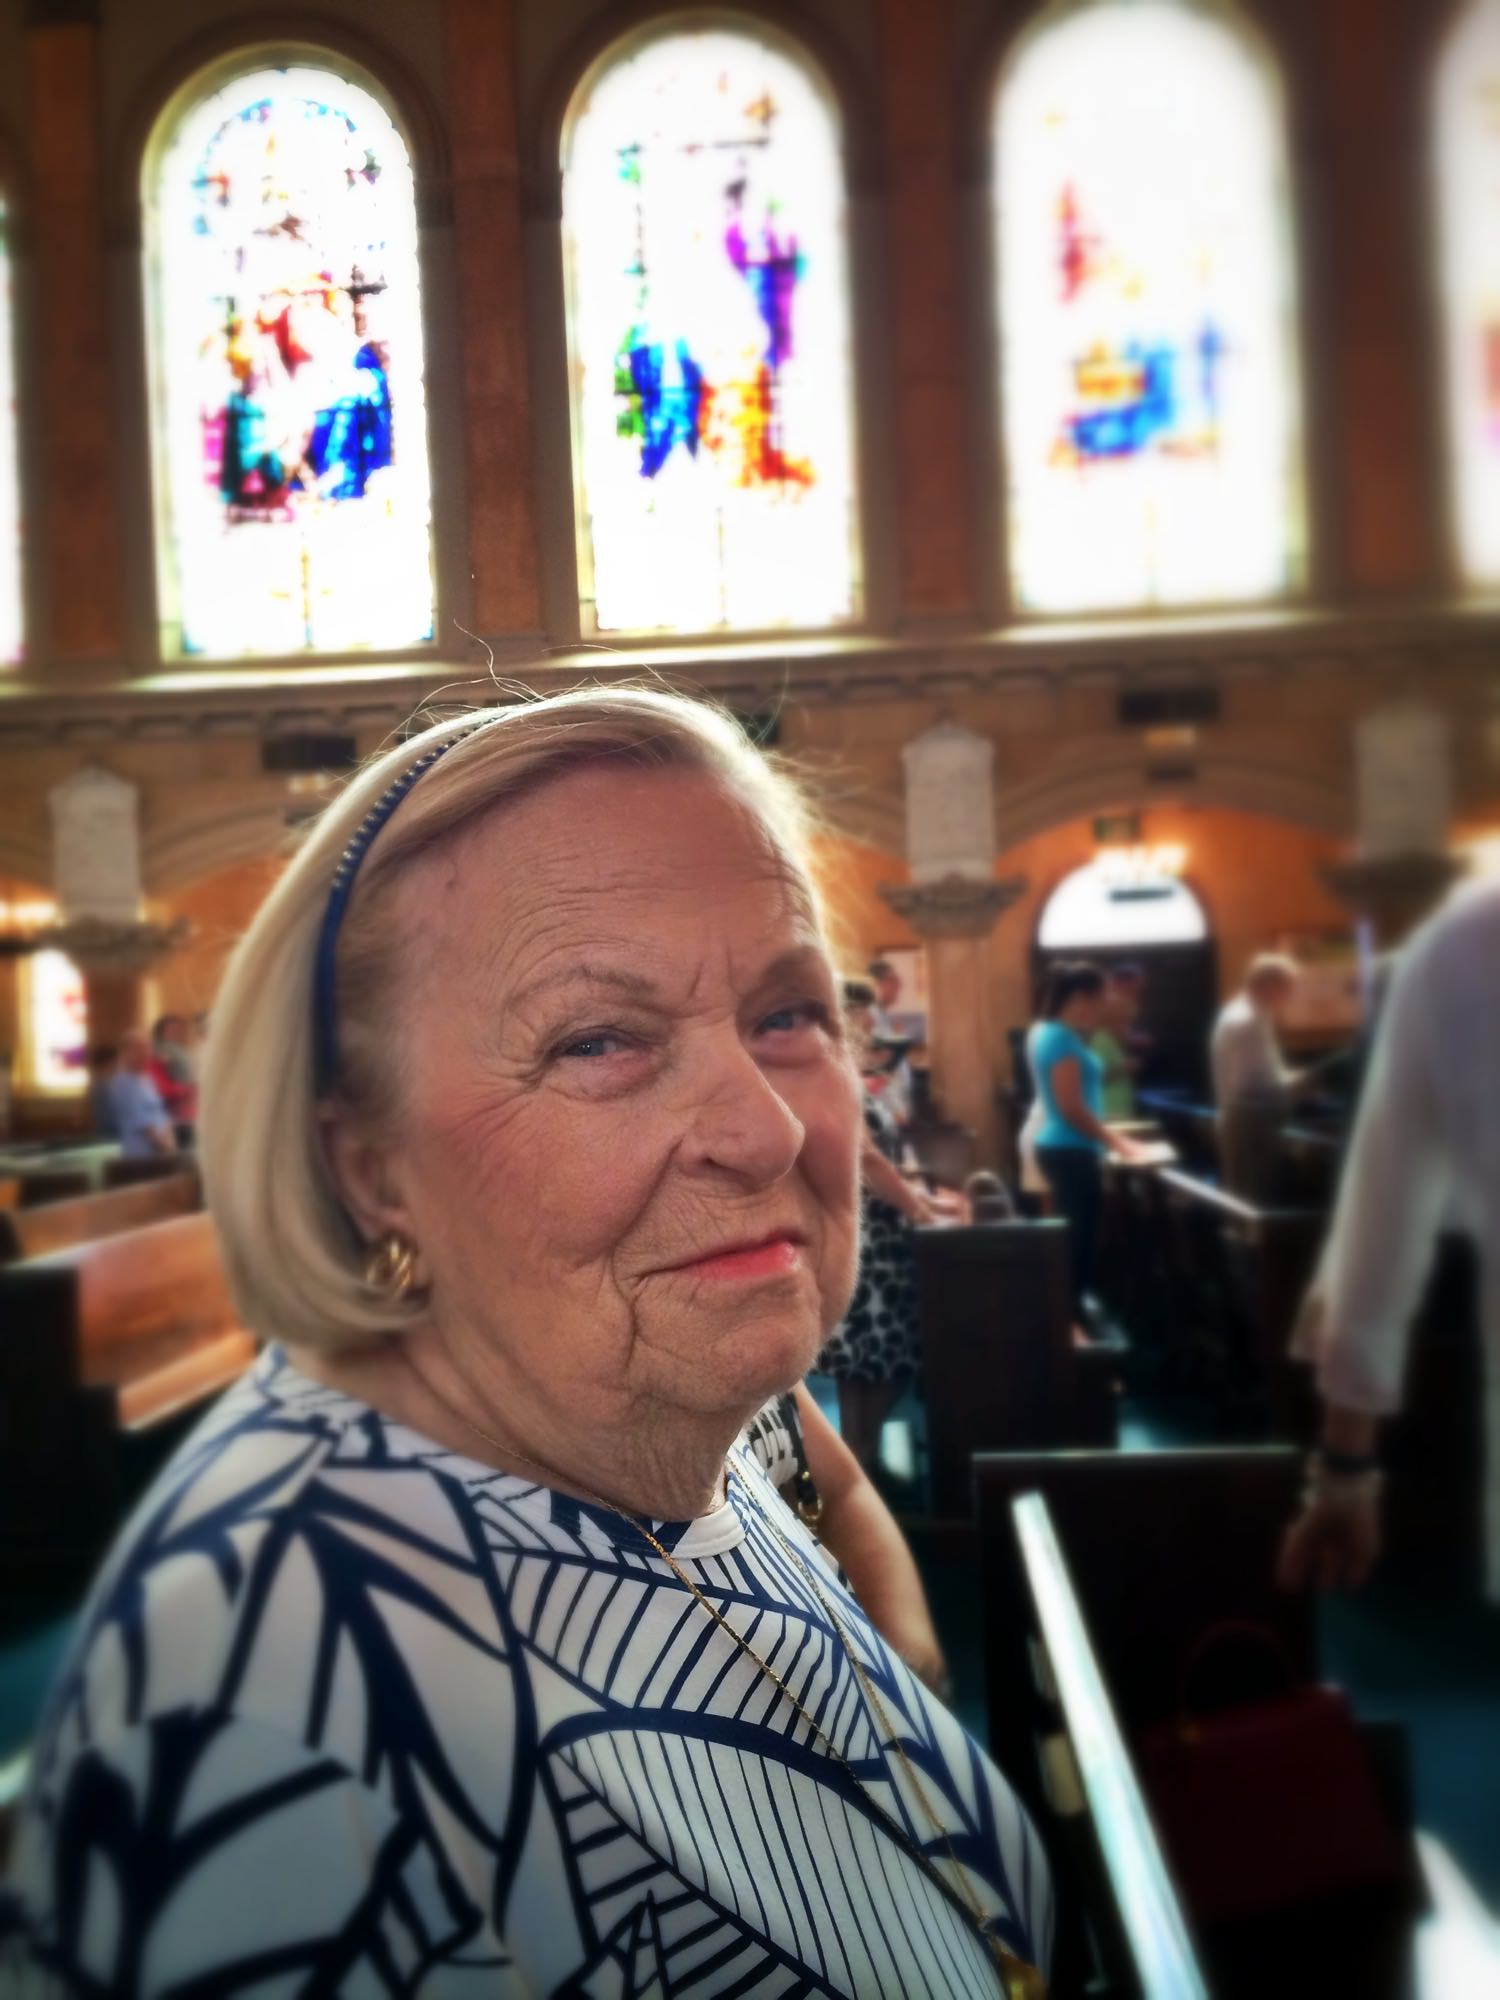 Blanche at St. Edward's Church in Palm Beach, FL